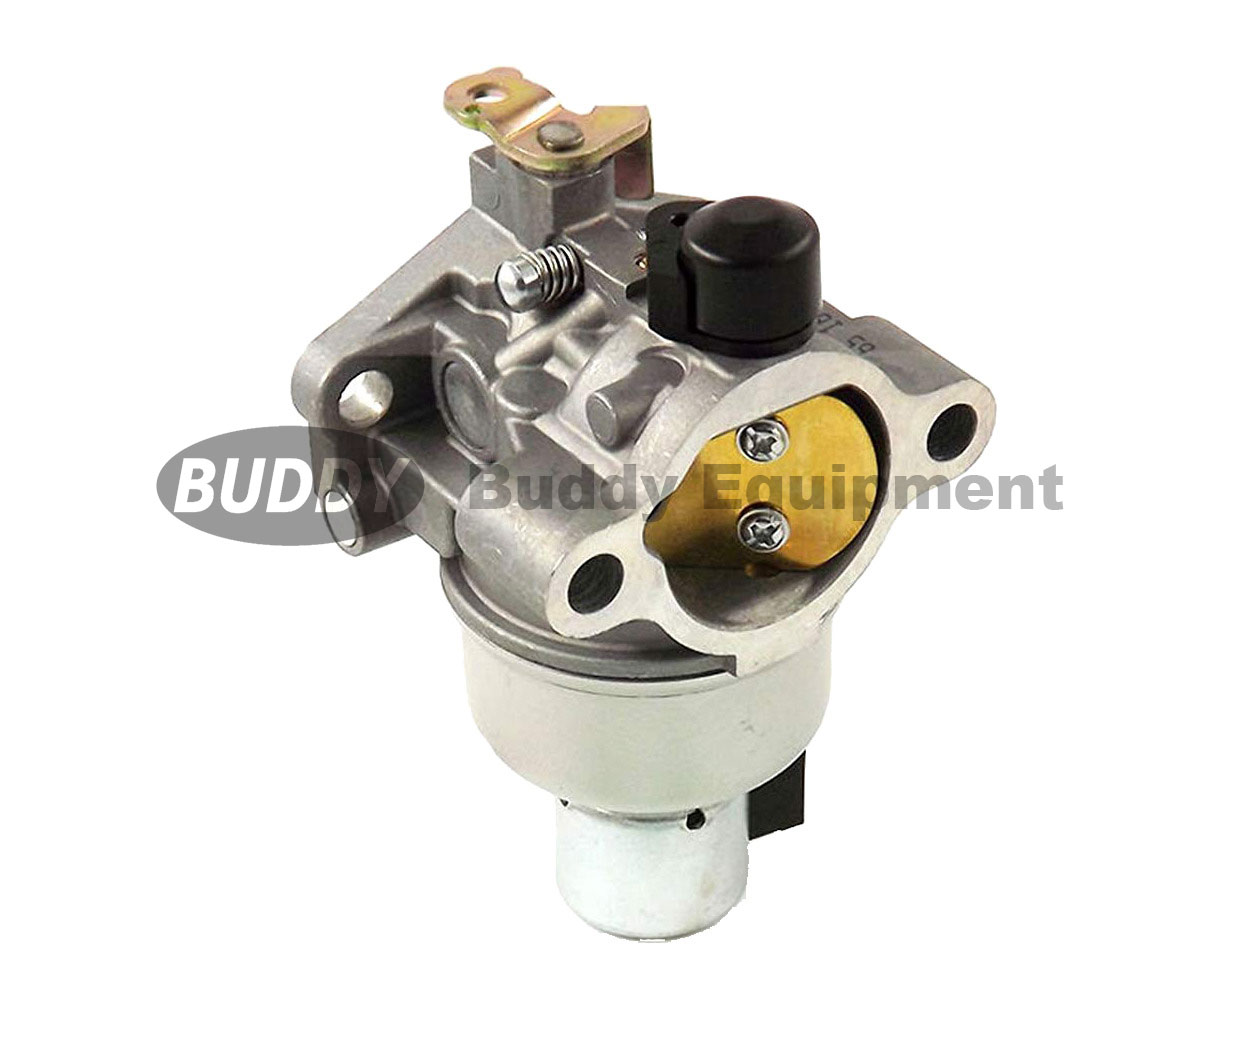 50456 - Carburetor Kohler 4285303 – Buddy Equipment